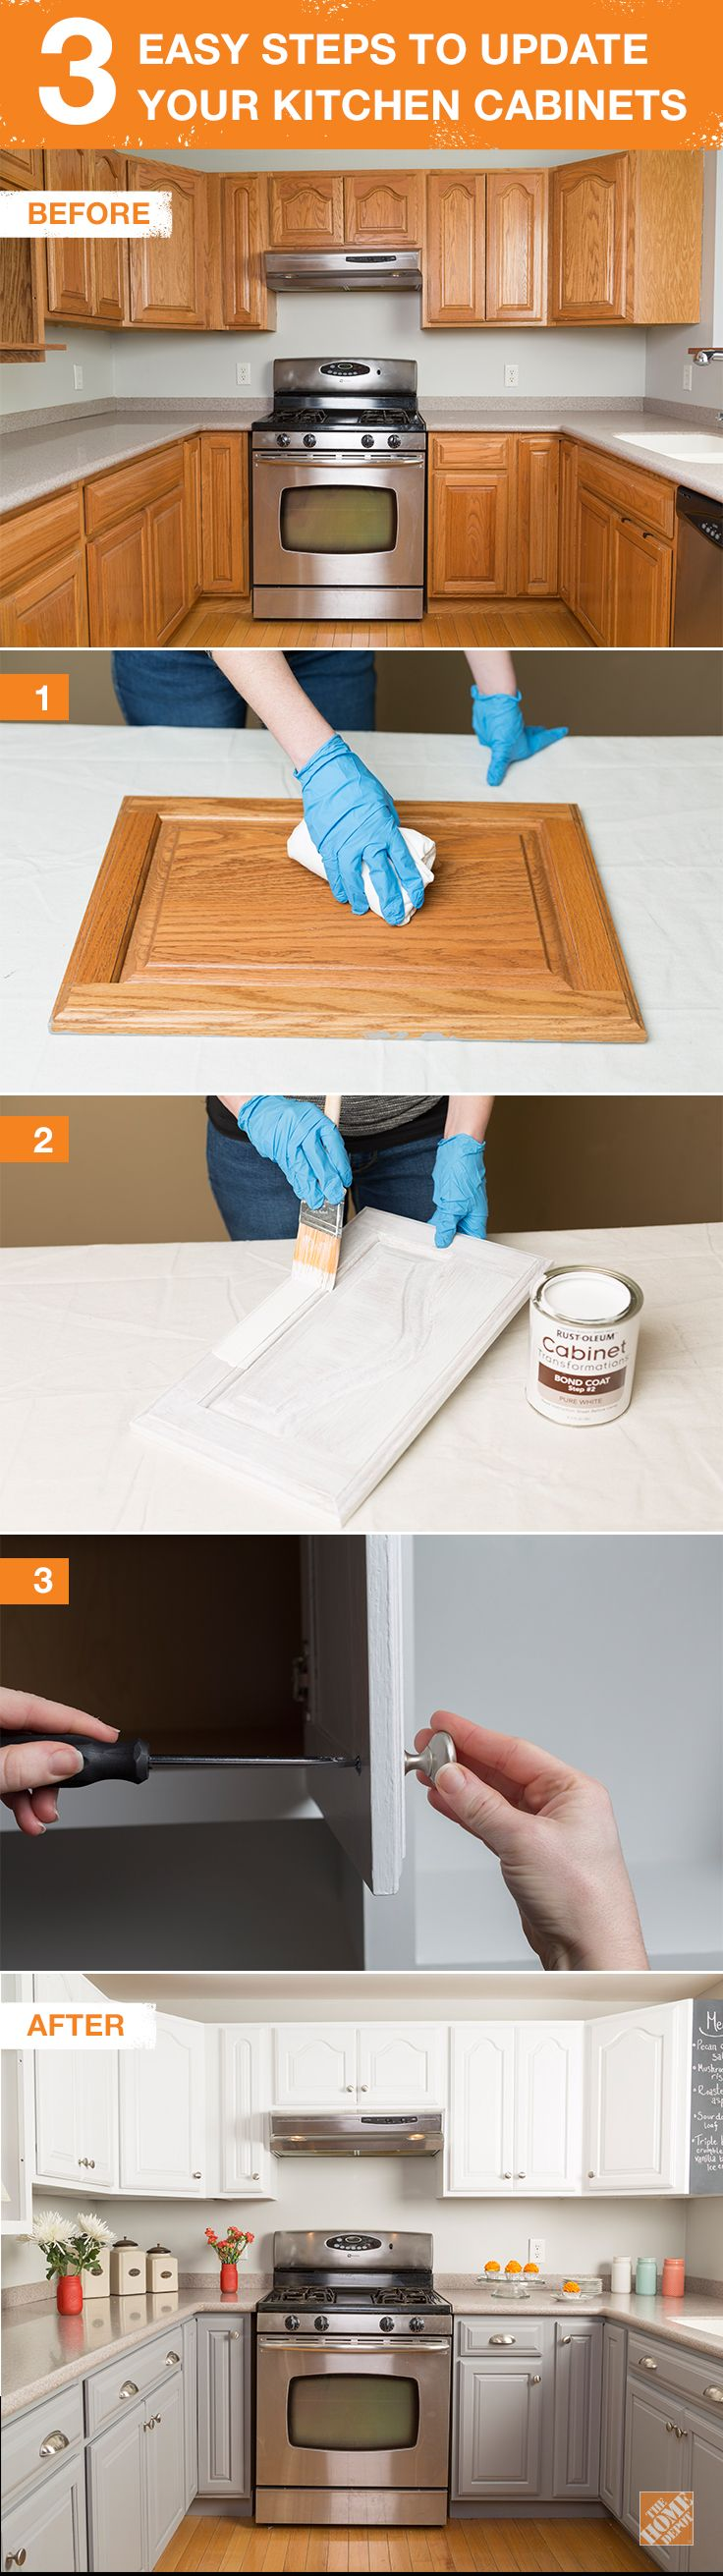 amazing Easy Way To Make Own Kitchen Cabinets #9: Update your kitchen cabinets in 3 easy steps. With Rust-Oleum paint, you